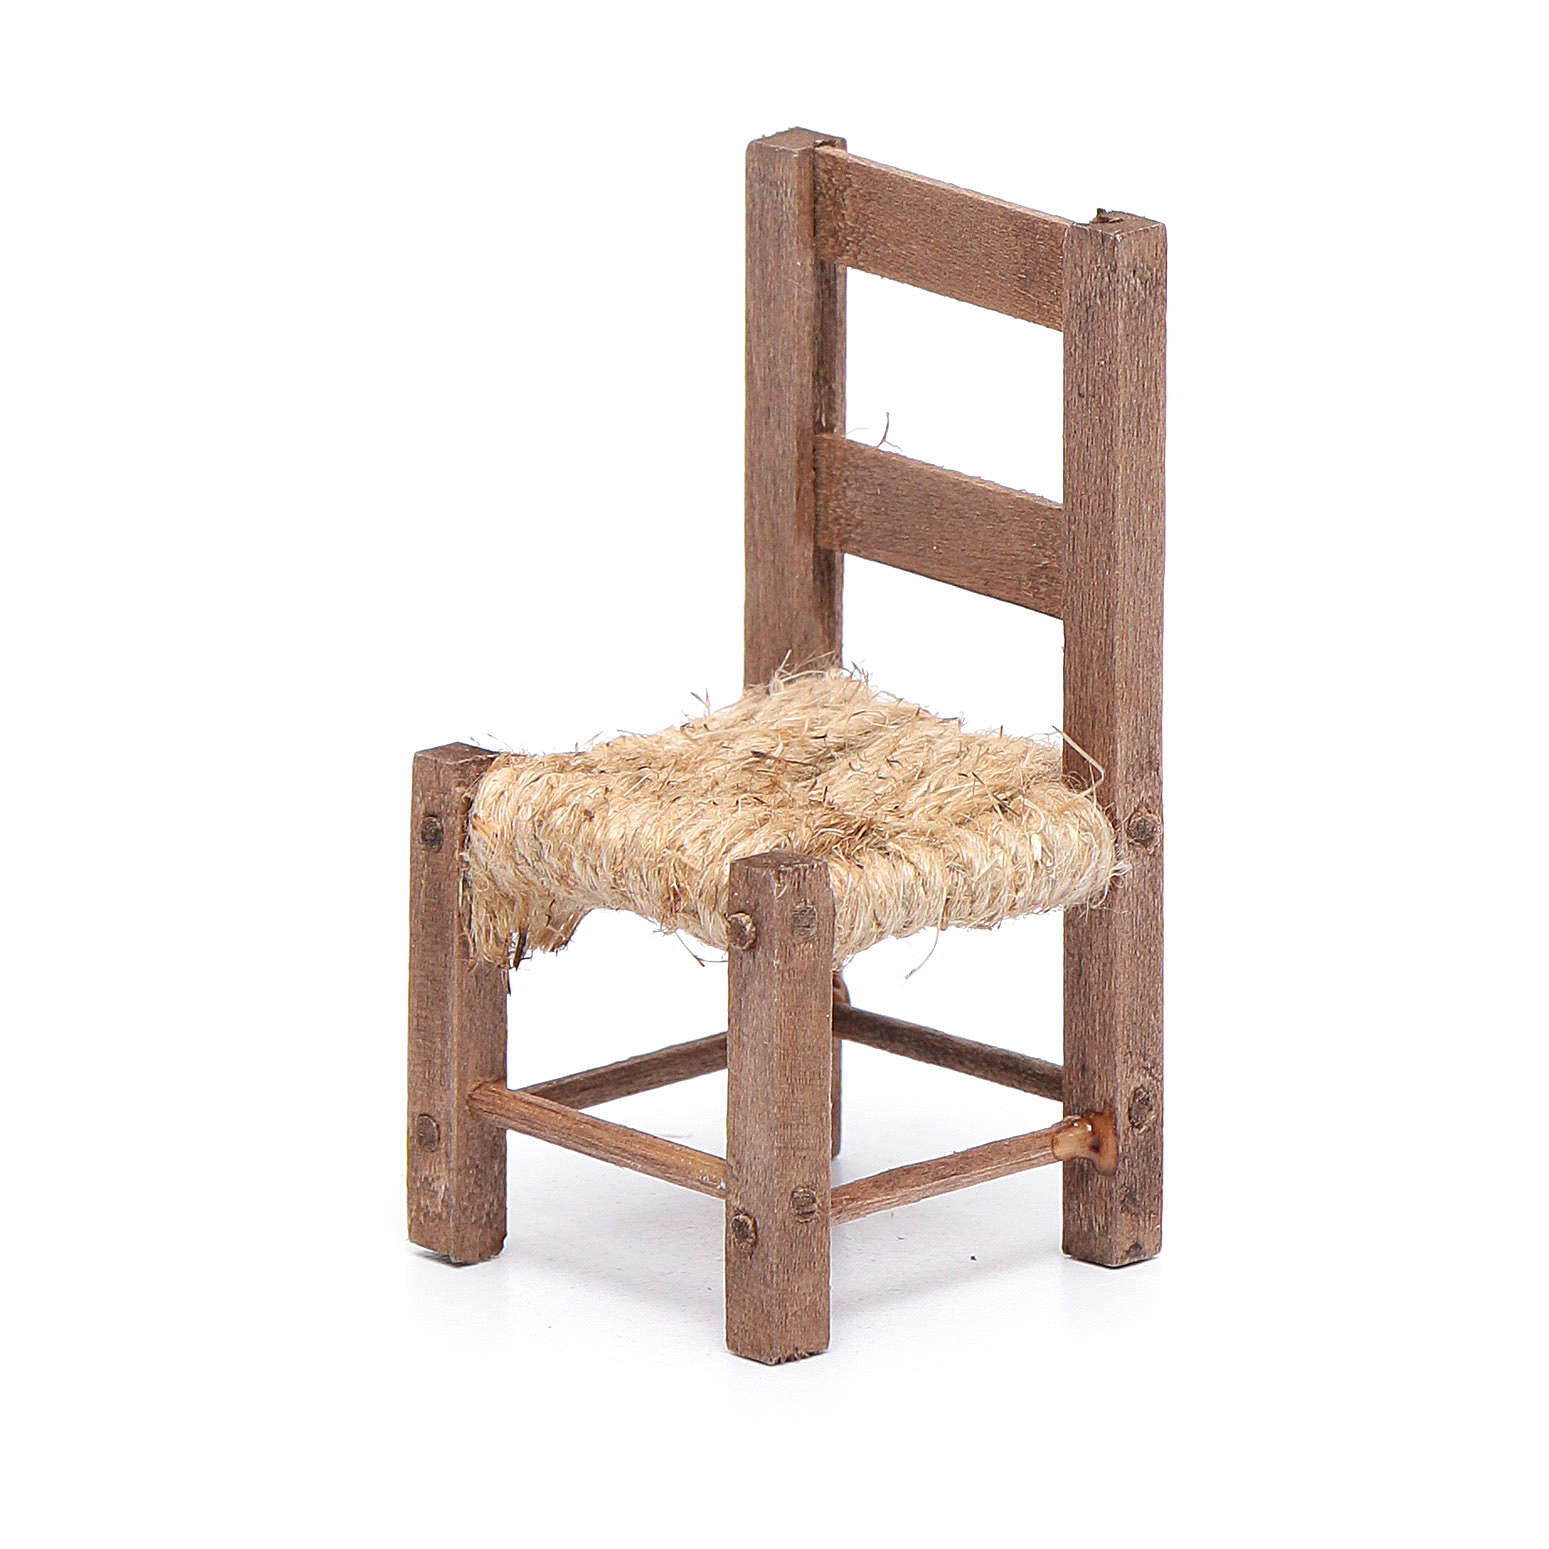 Wooden chair and rope 6 cm for Neapolitan nativity scene 4